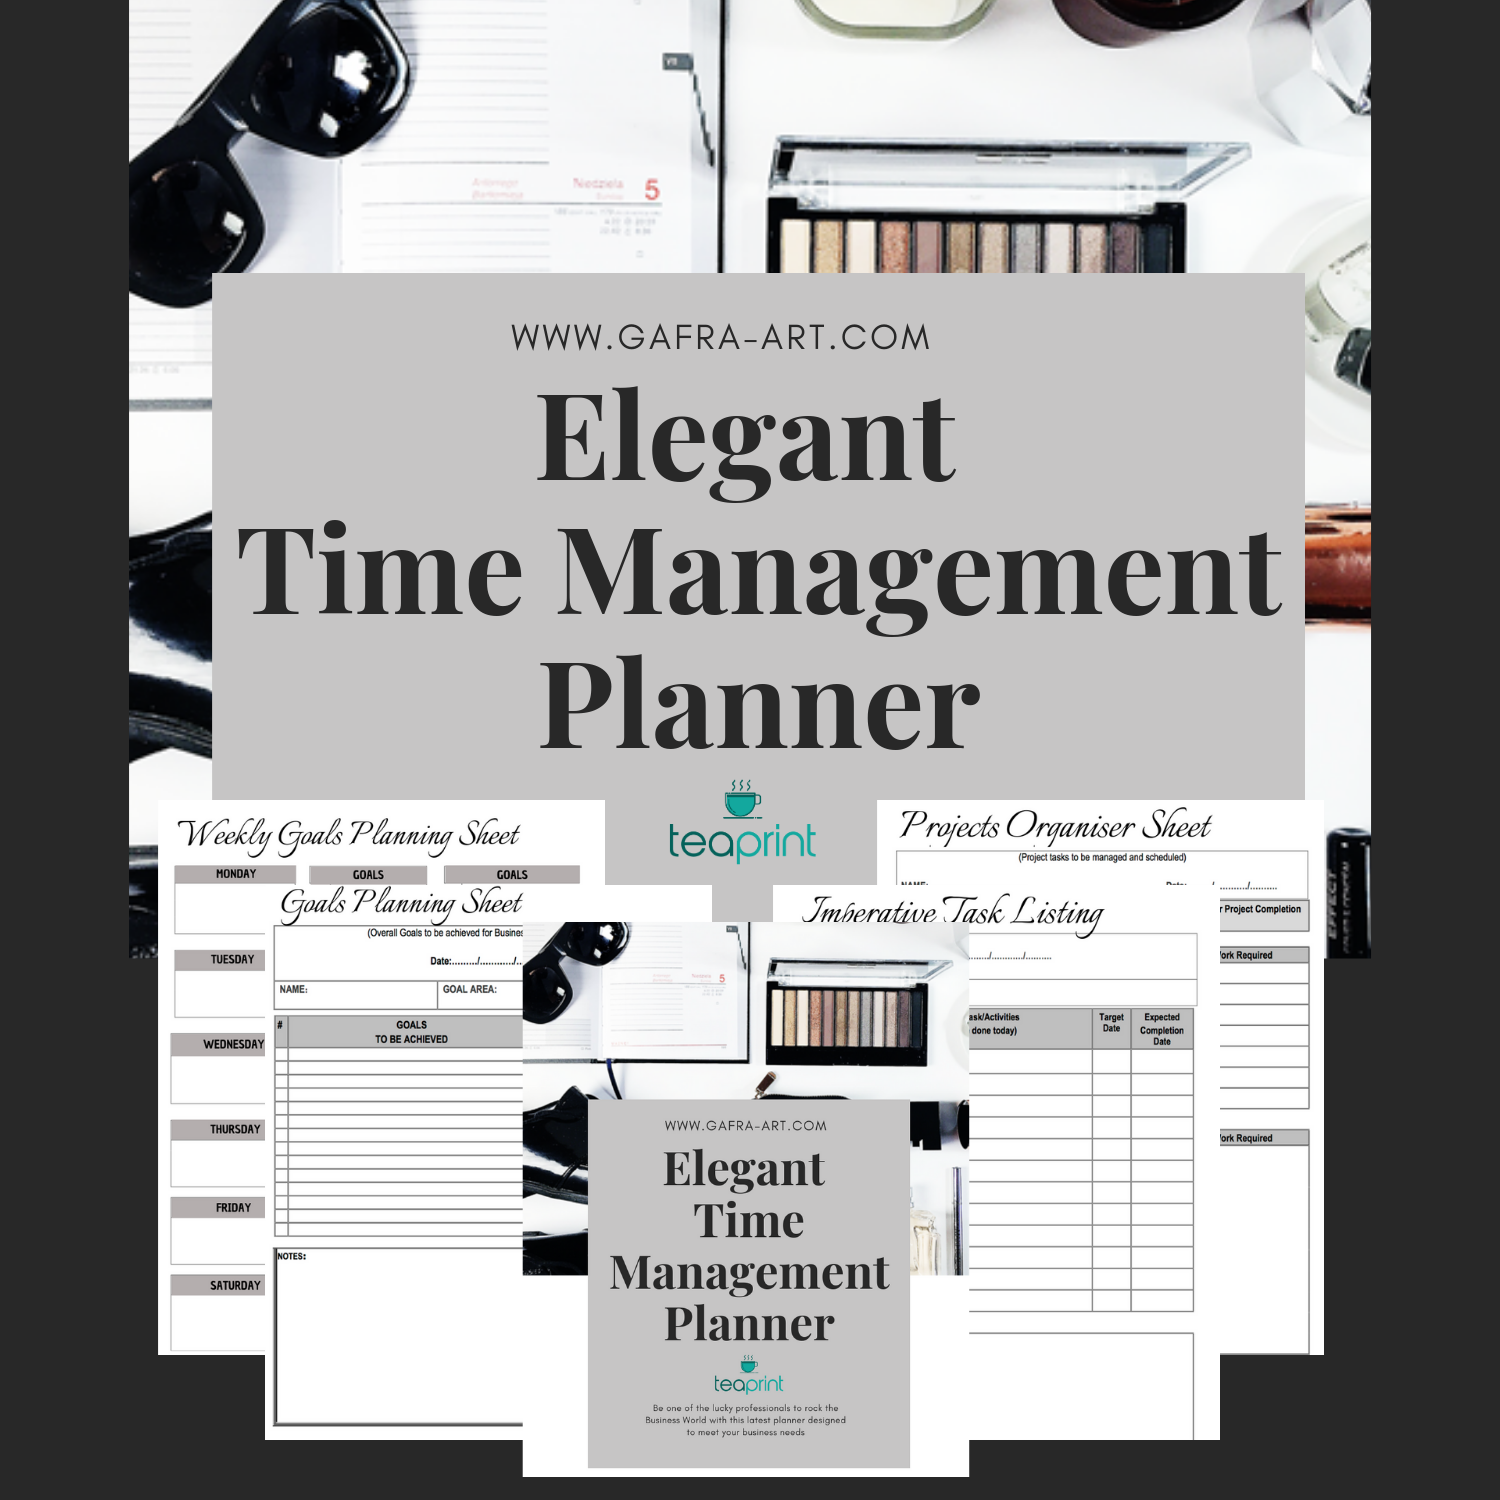 Elegant Time Management Planner available at gafra.org or www.etsy.com/shop/teaprint